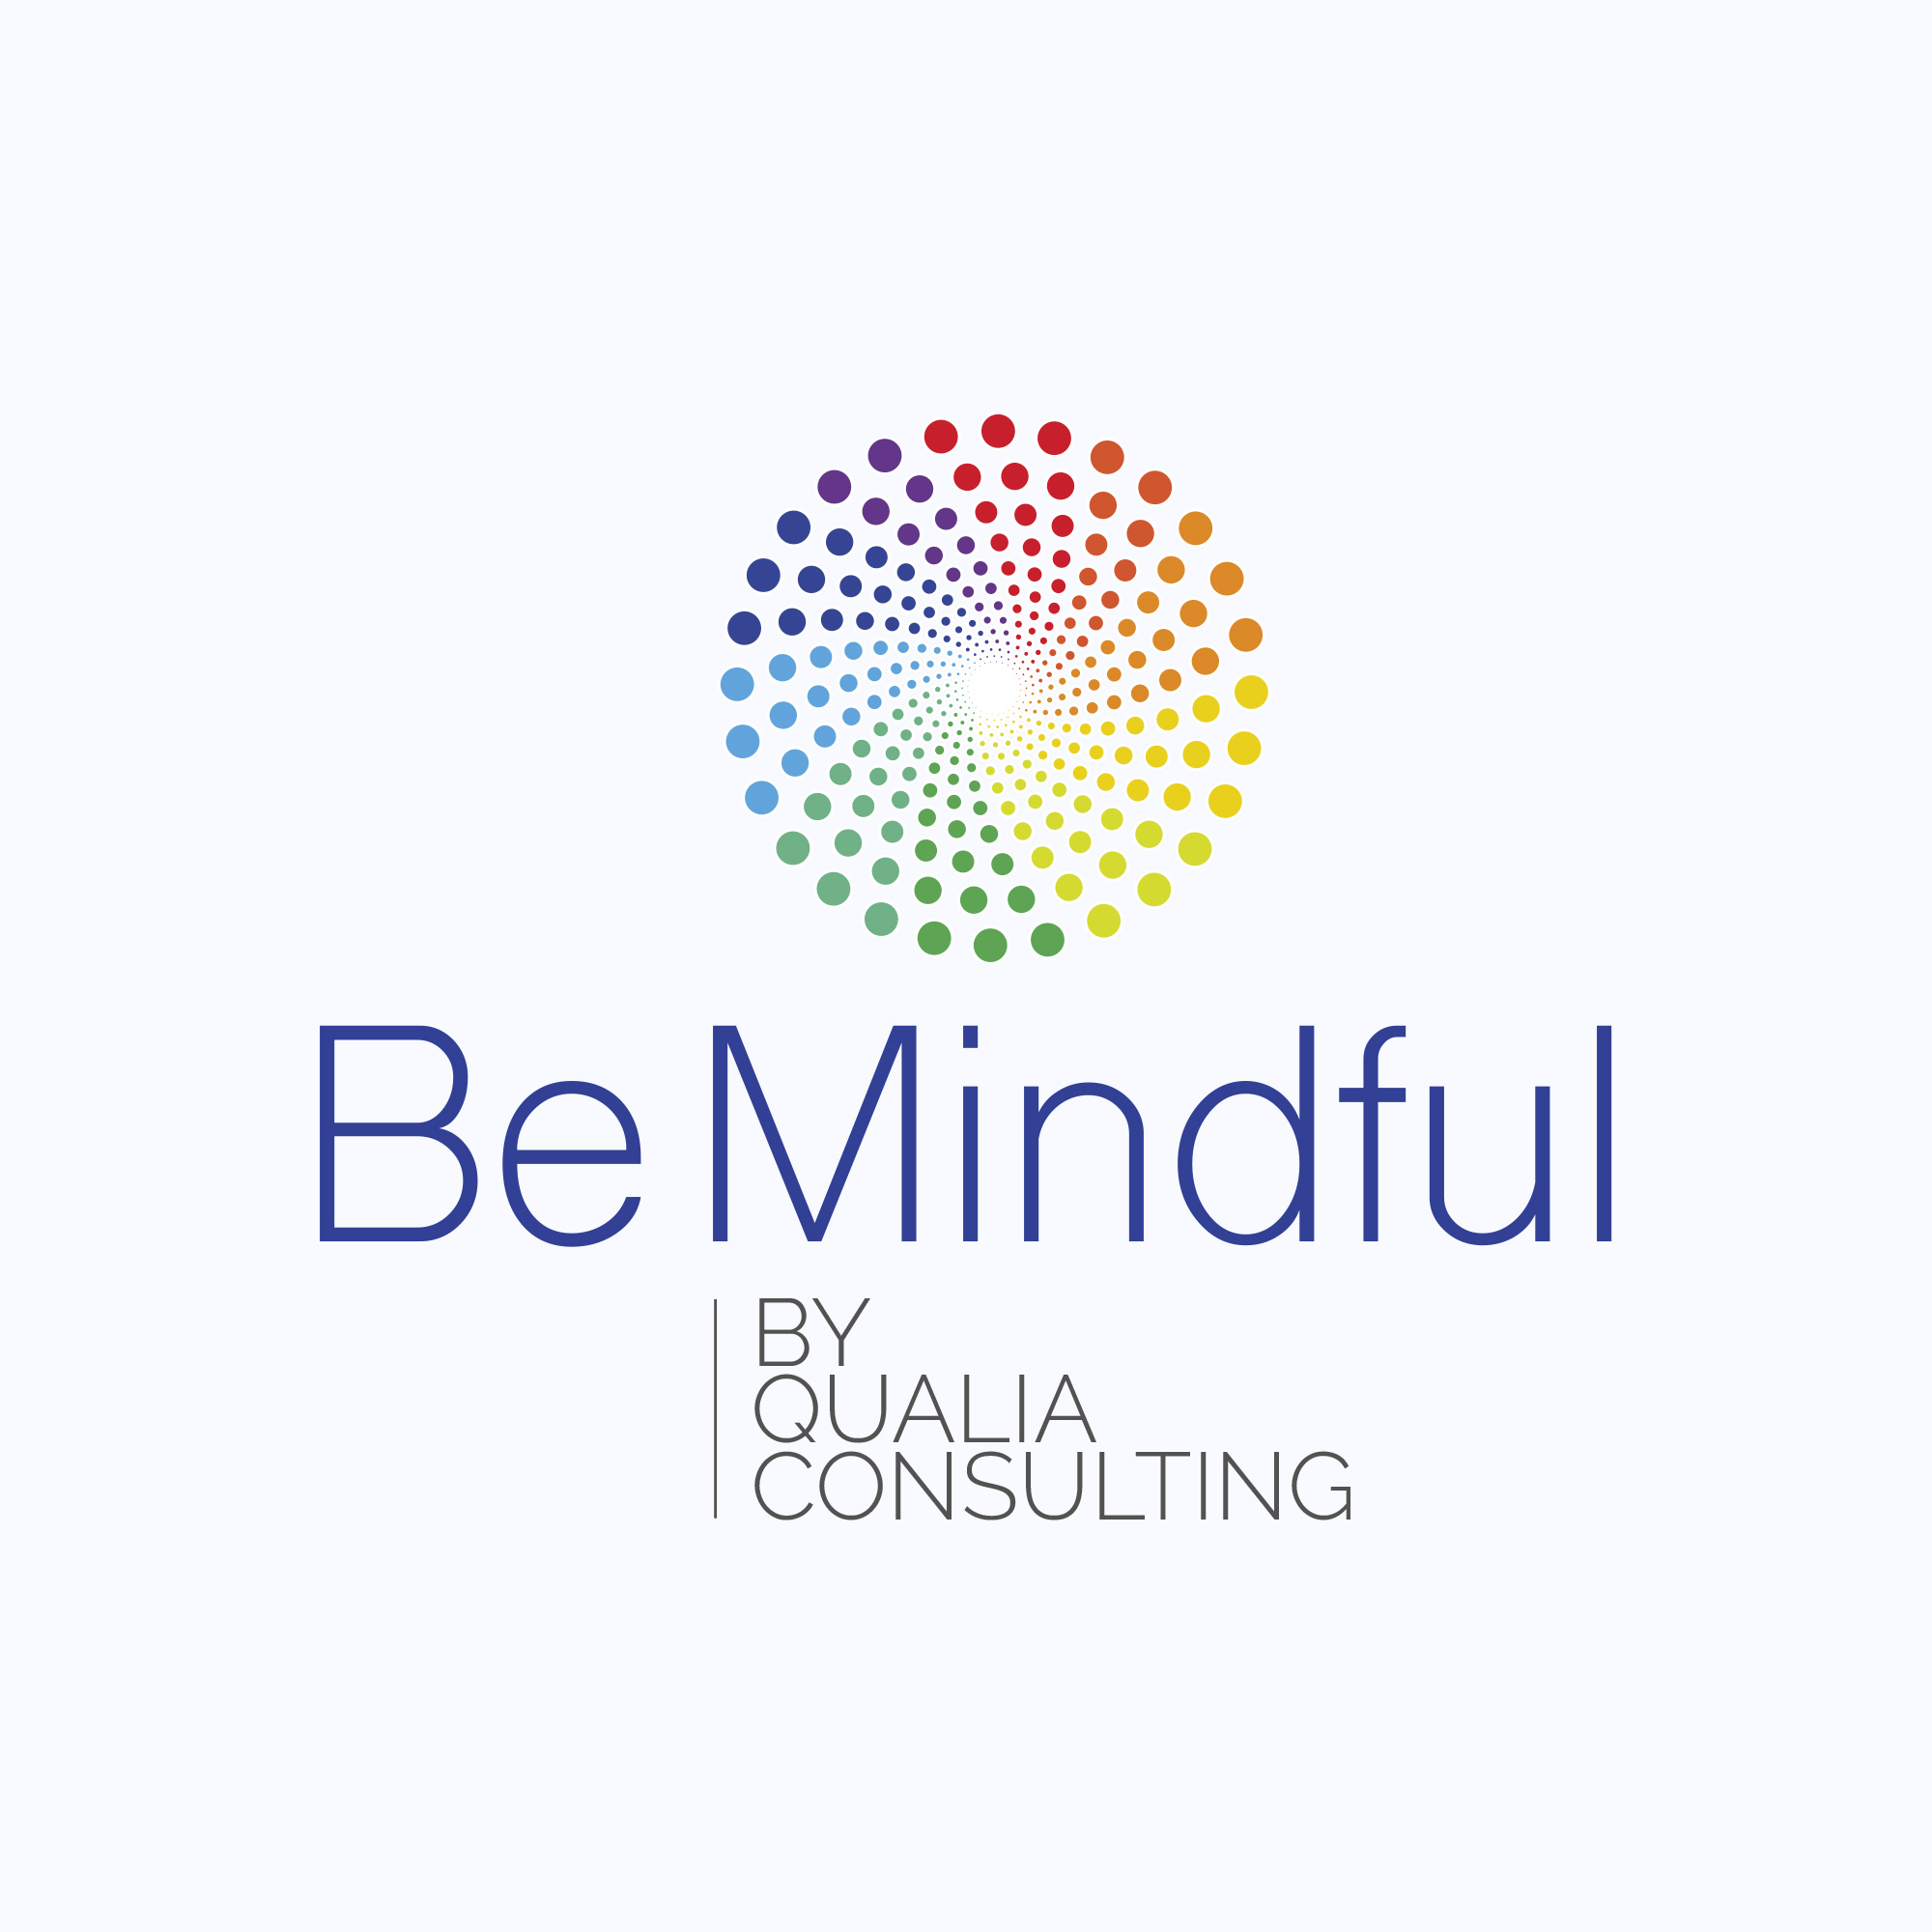 Création du logo Be mindful by Qualia